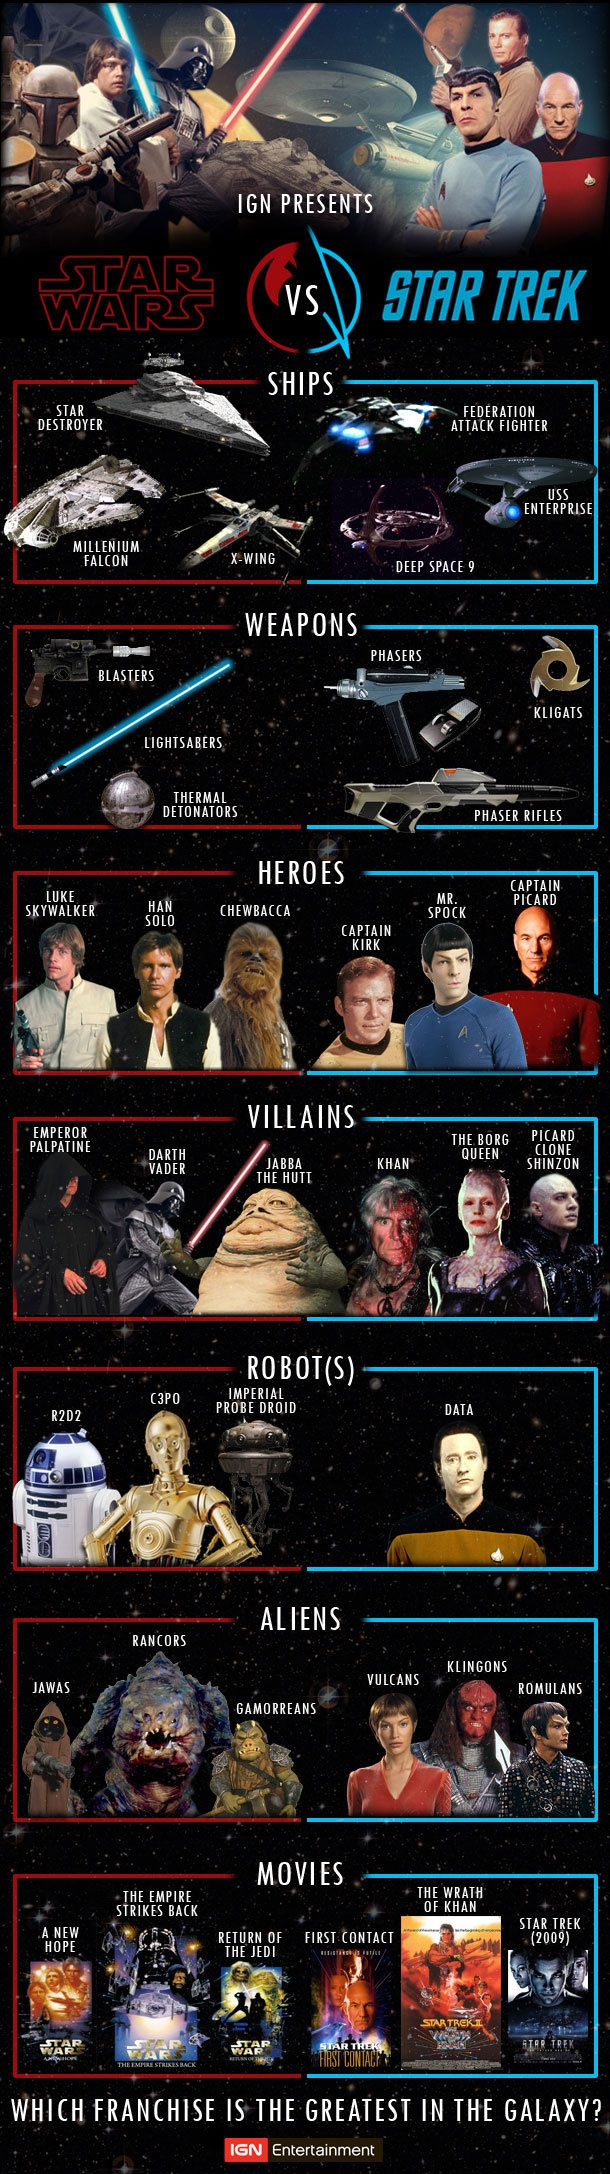 star-wars-vs-star-trek-batalla-total_smnt